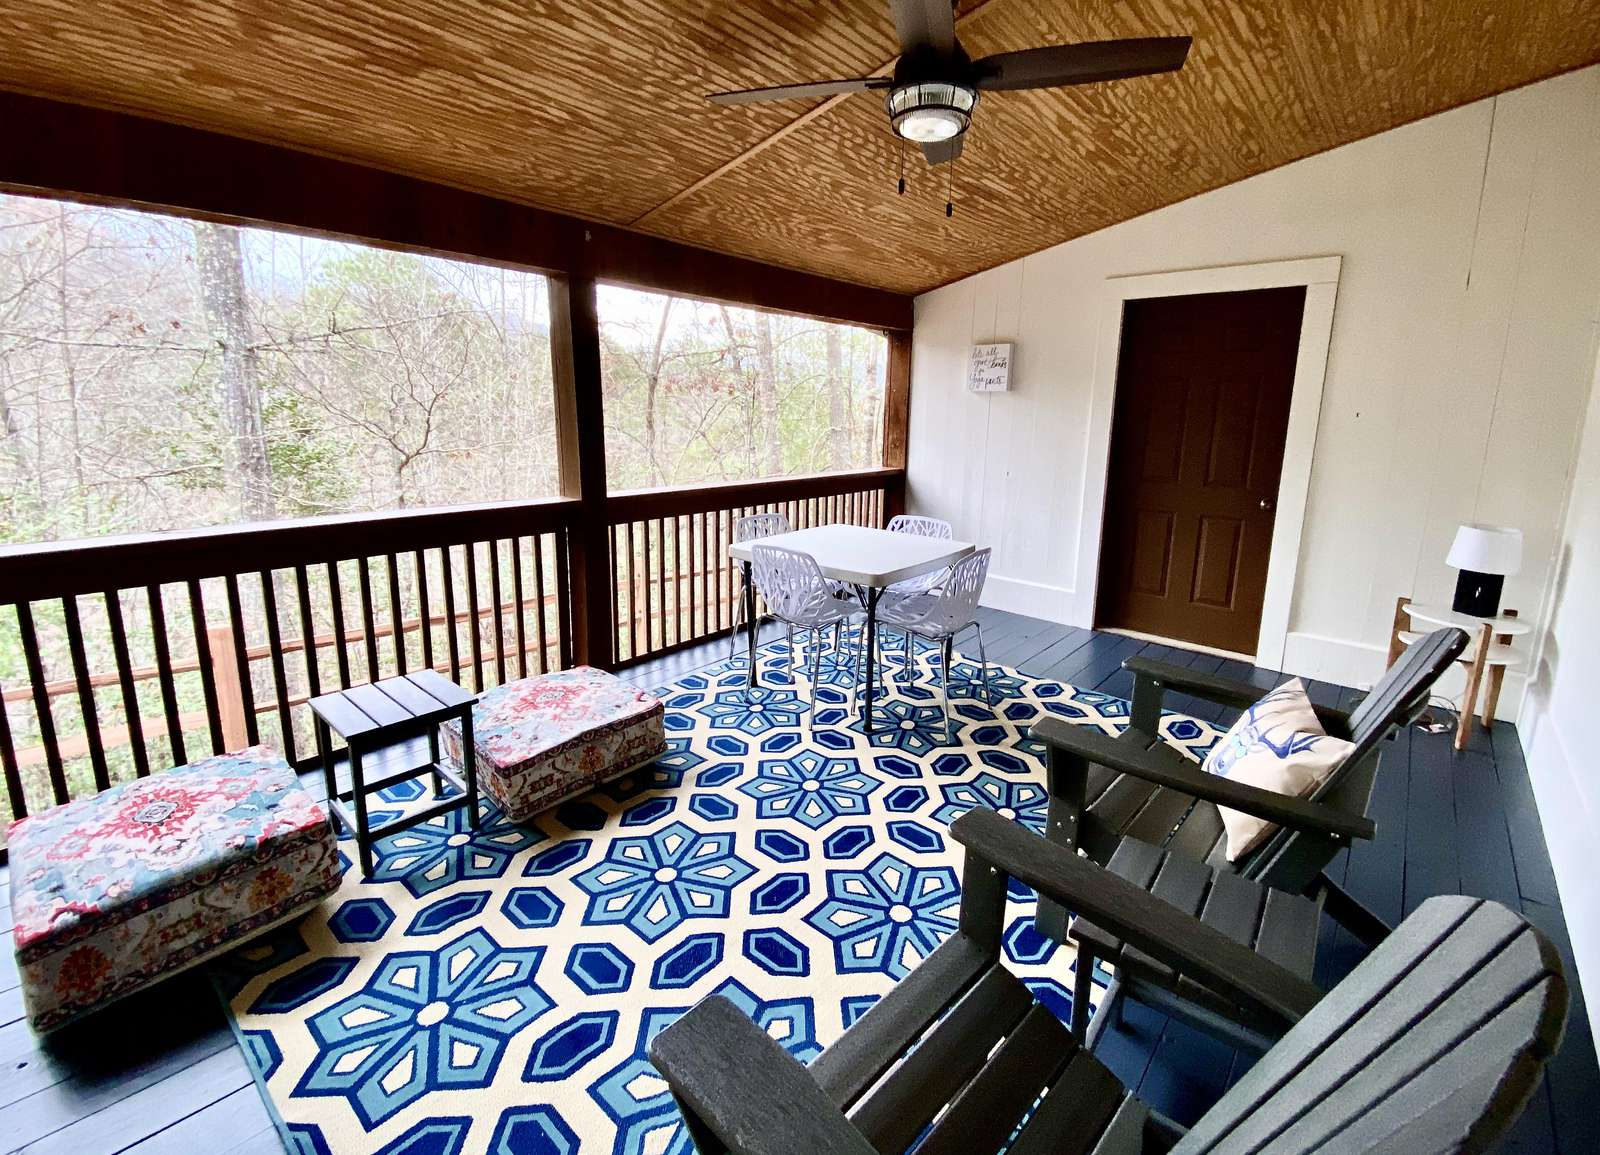 Completely Private Screened Porch is ideal for Yoga or Relaxing with a Good Book